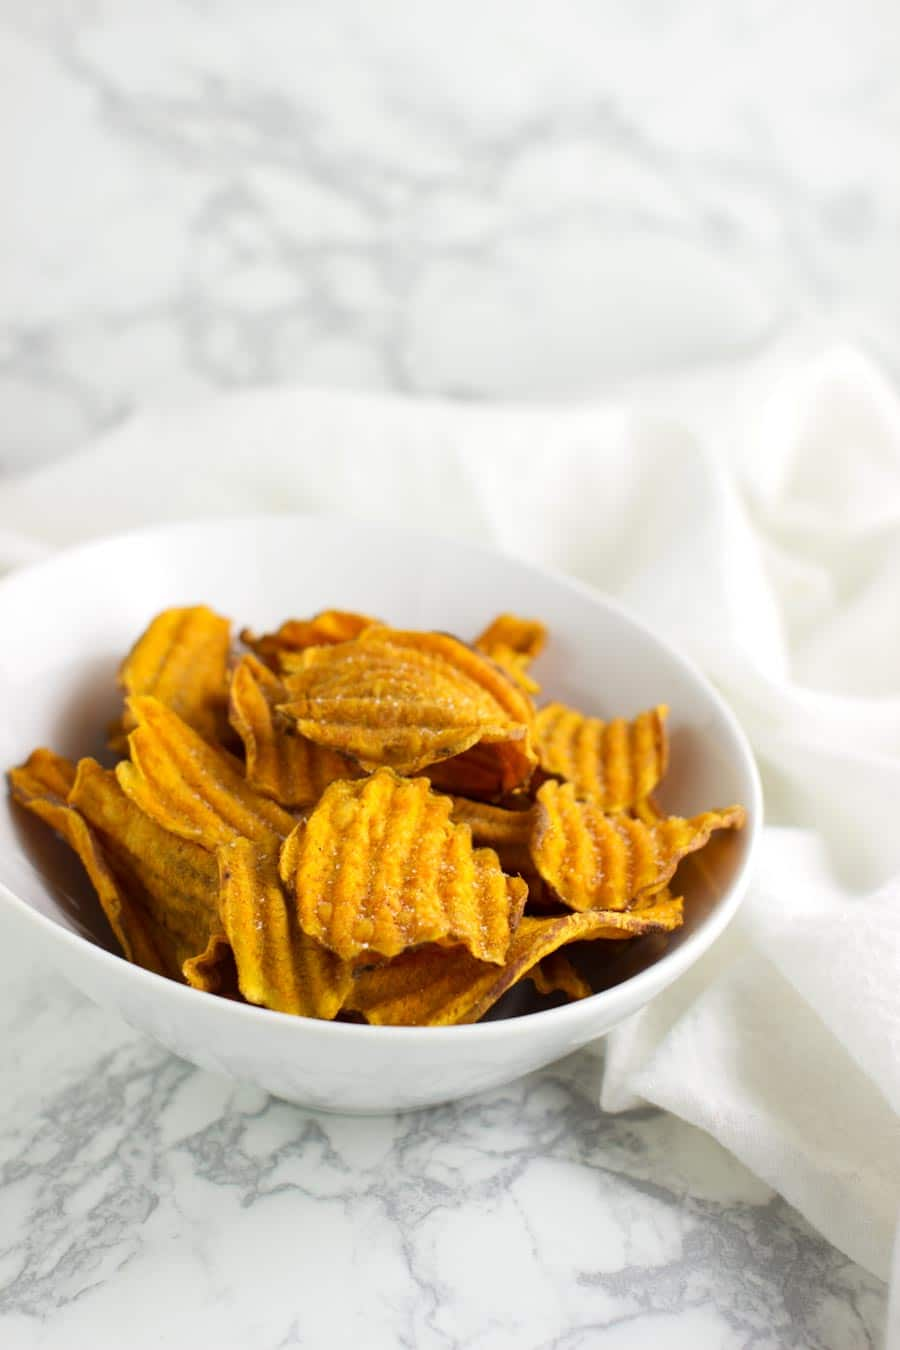 Sweet Potato Chips recipe from acleanplate.com #aip #paleo #autoimmuneprotocol